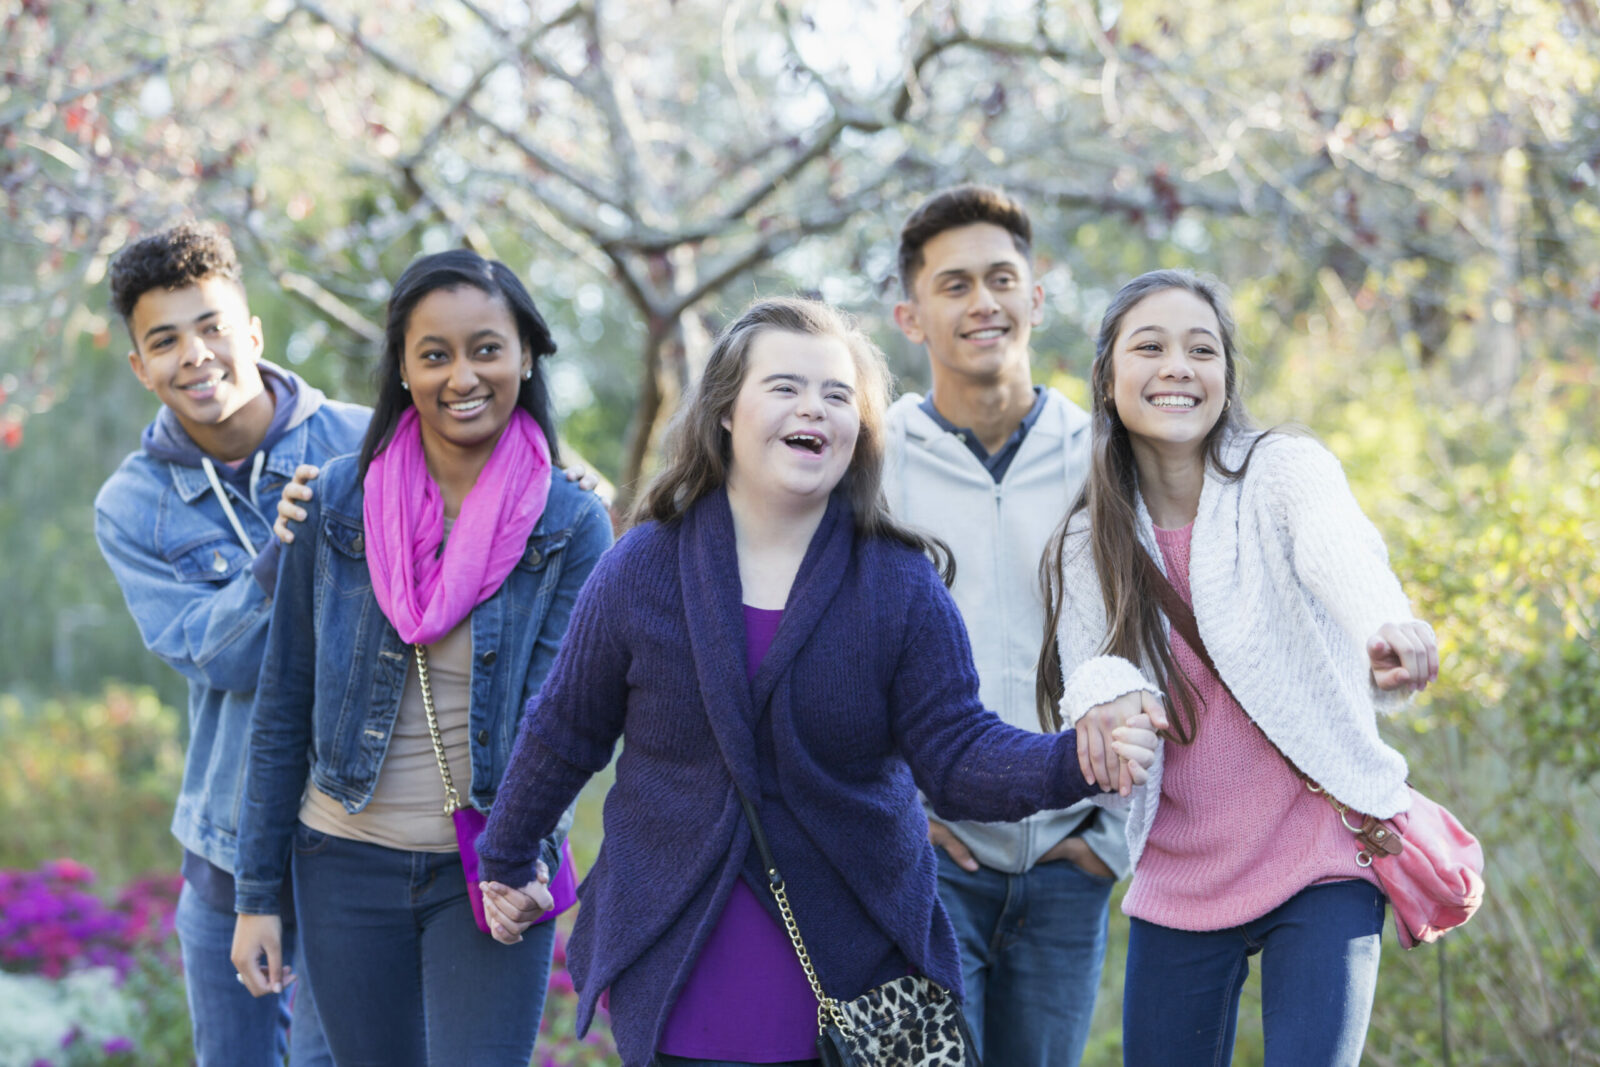 A group of multi-ethnic teenagers walking in a park. The girl in the purple sweater has Down's syndrome.